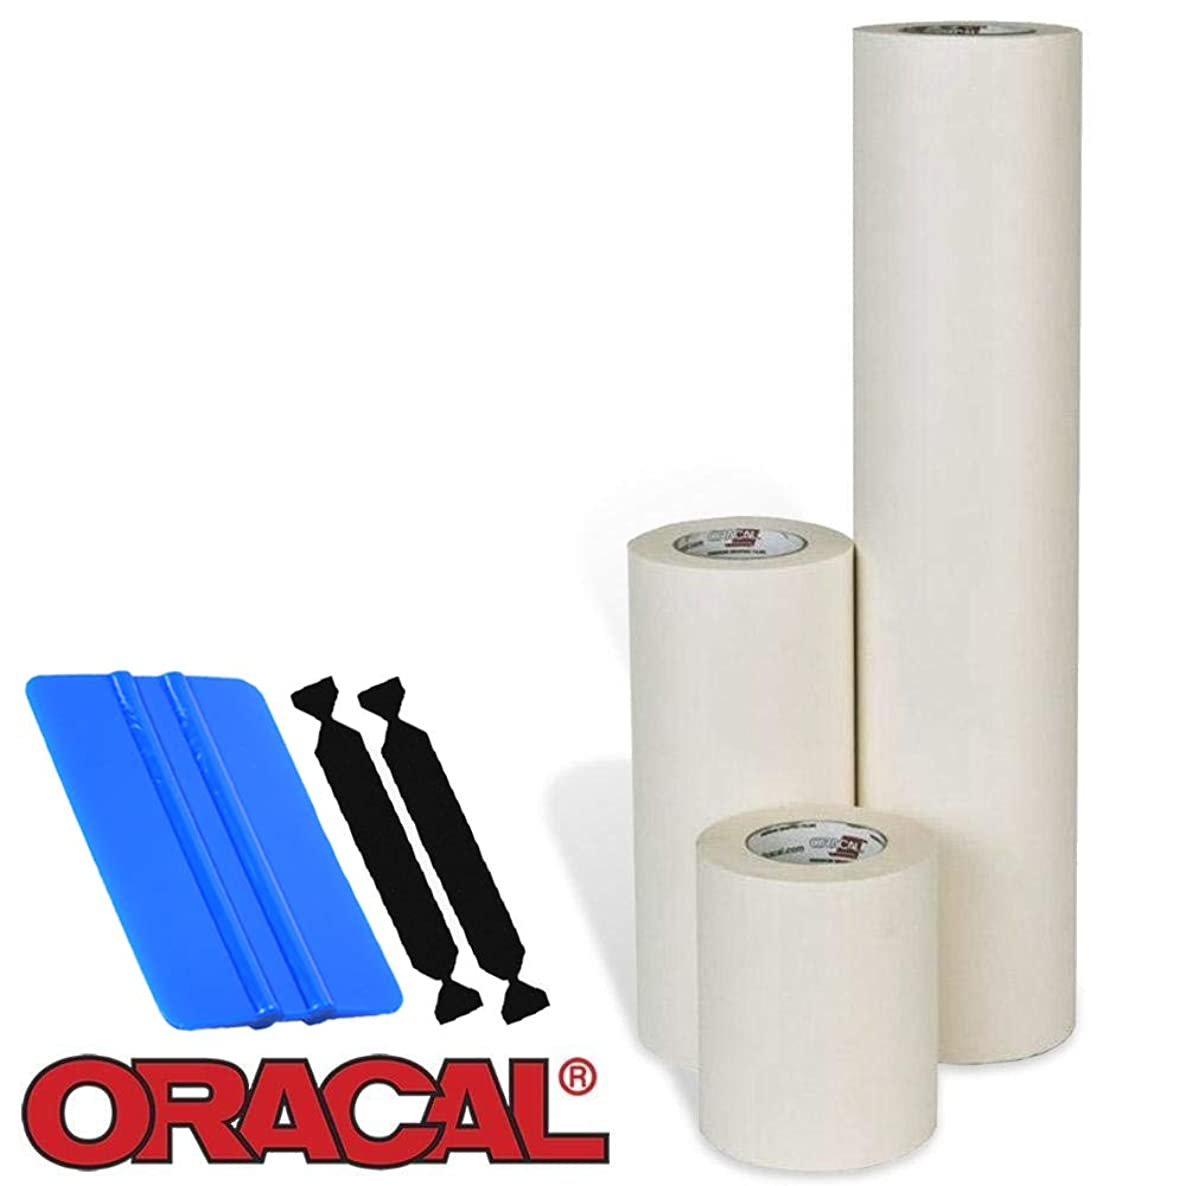 Oracal High Tack Transfer Tape (8